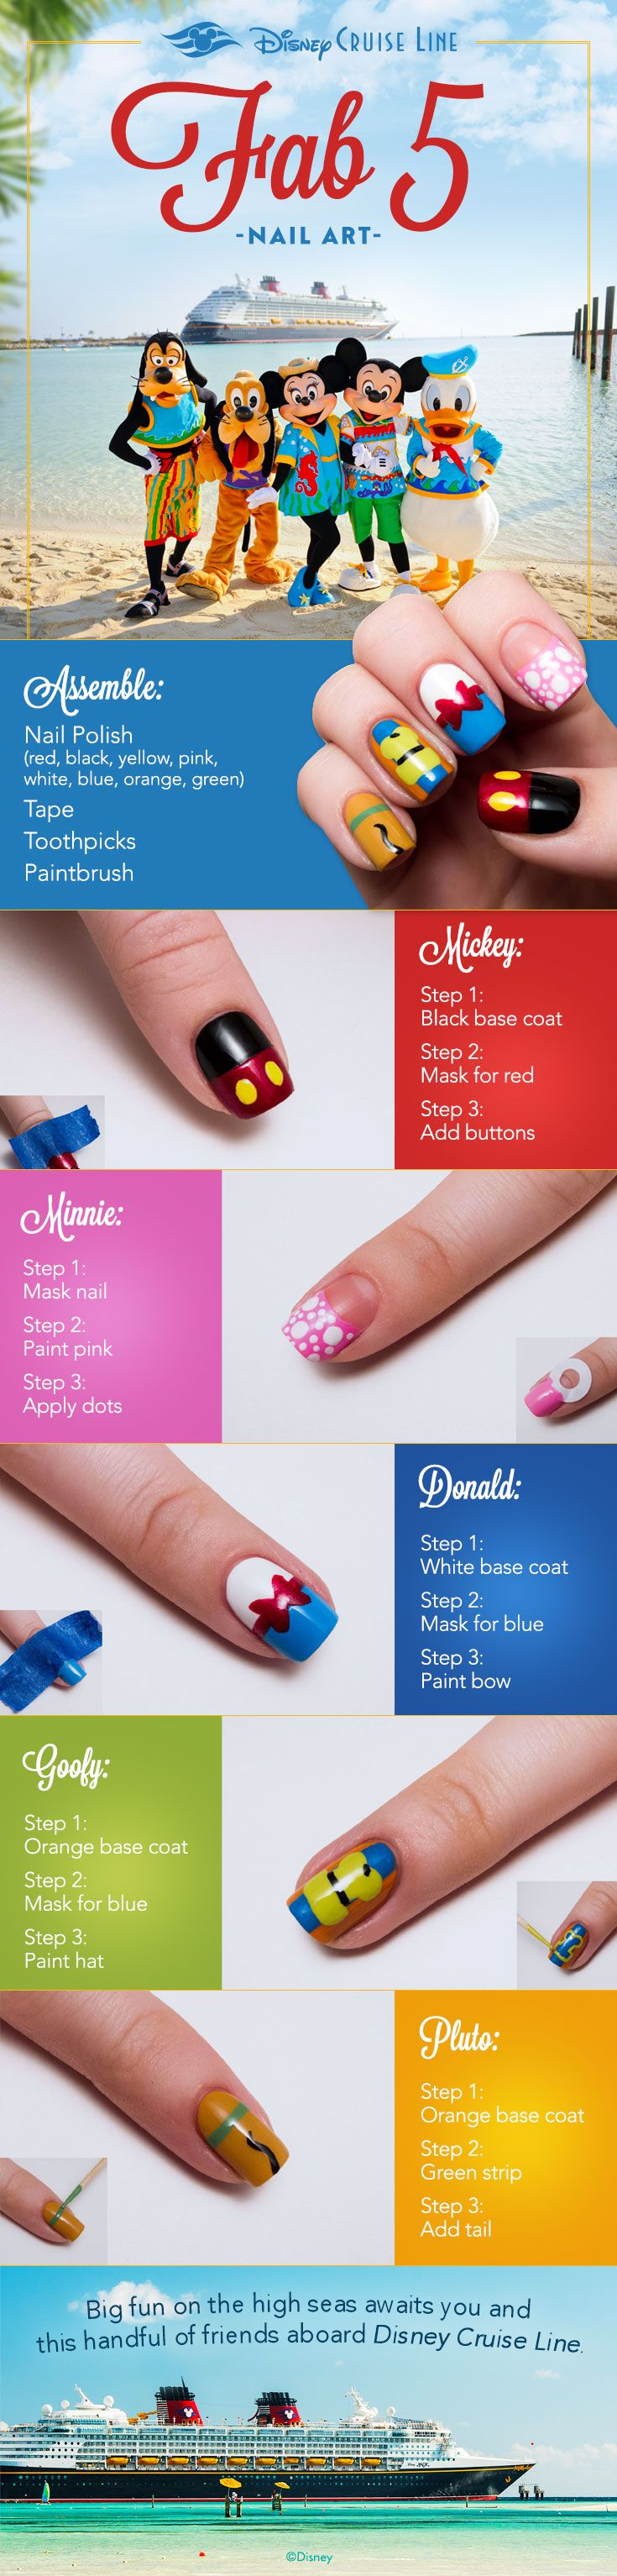 Give you nails real character when preparing for you next Disney Cruise Line sailing. Check out this fun tutorial featuring the lovable Fab Five!